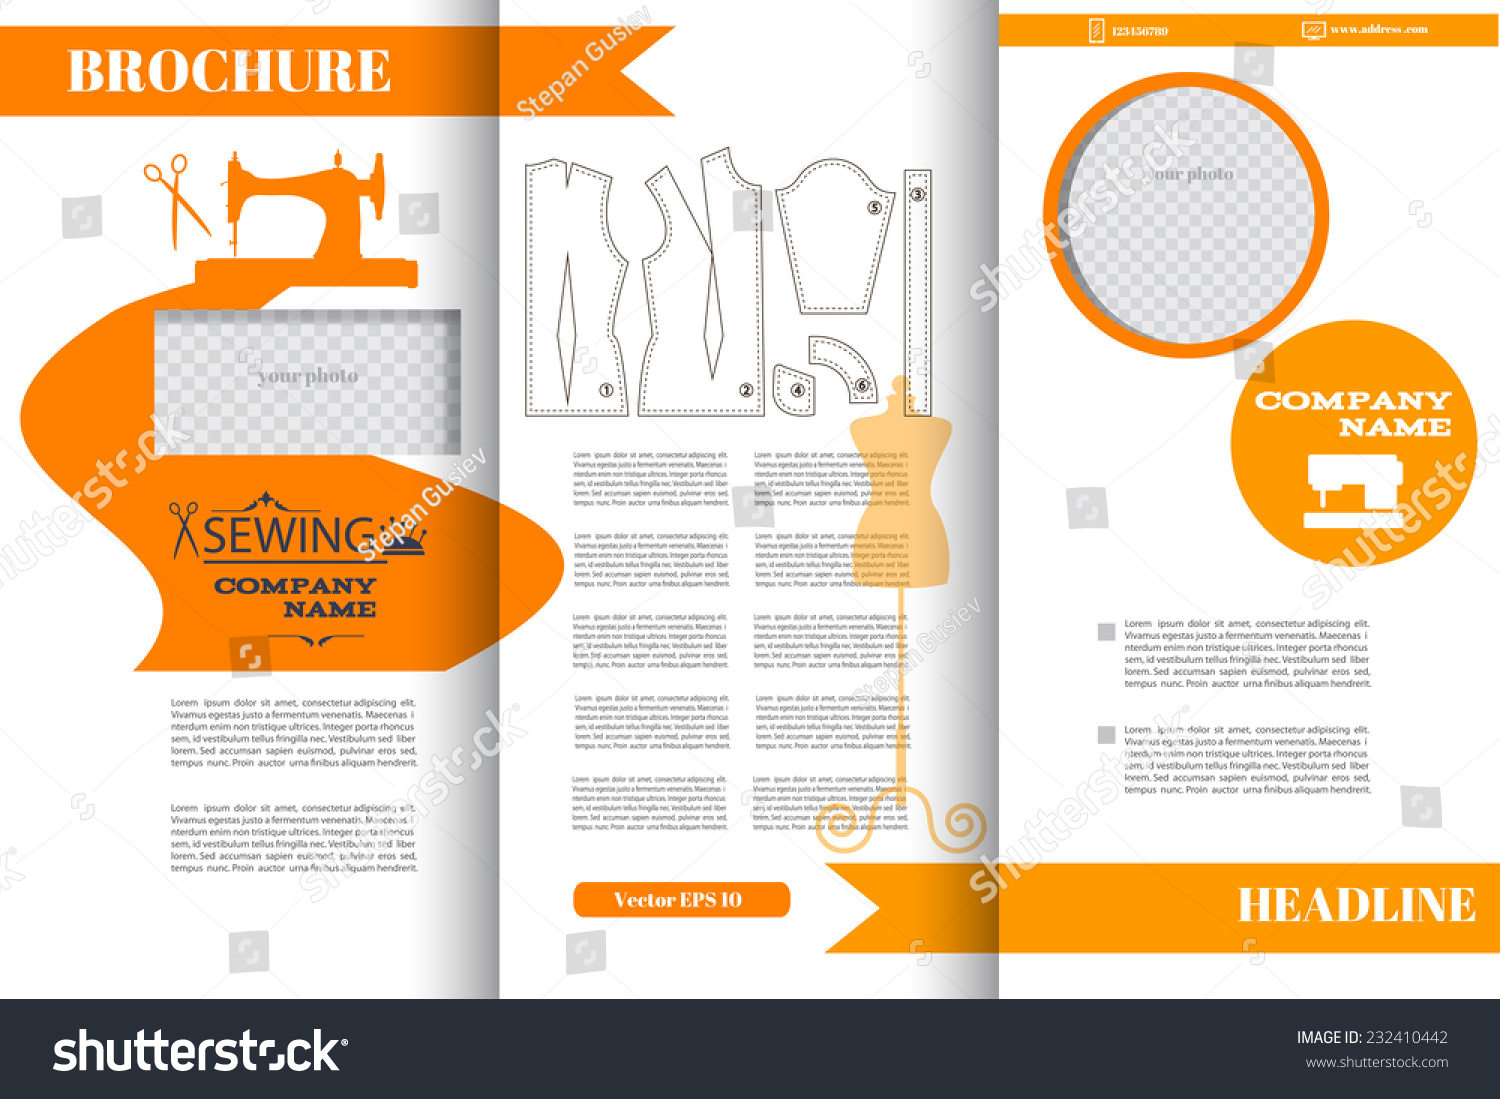 Brochure design templates fashion sewing industry stock for Fashion brochure template